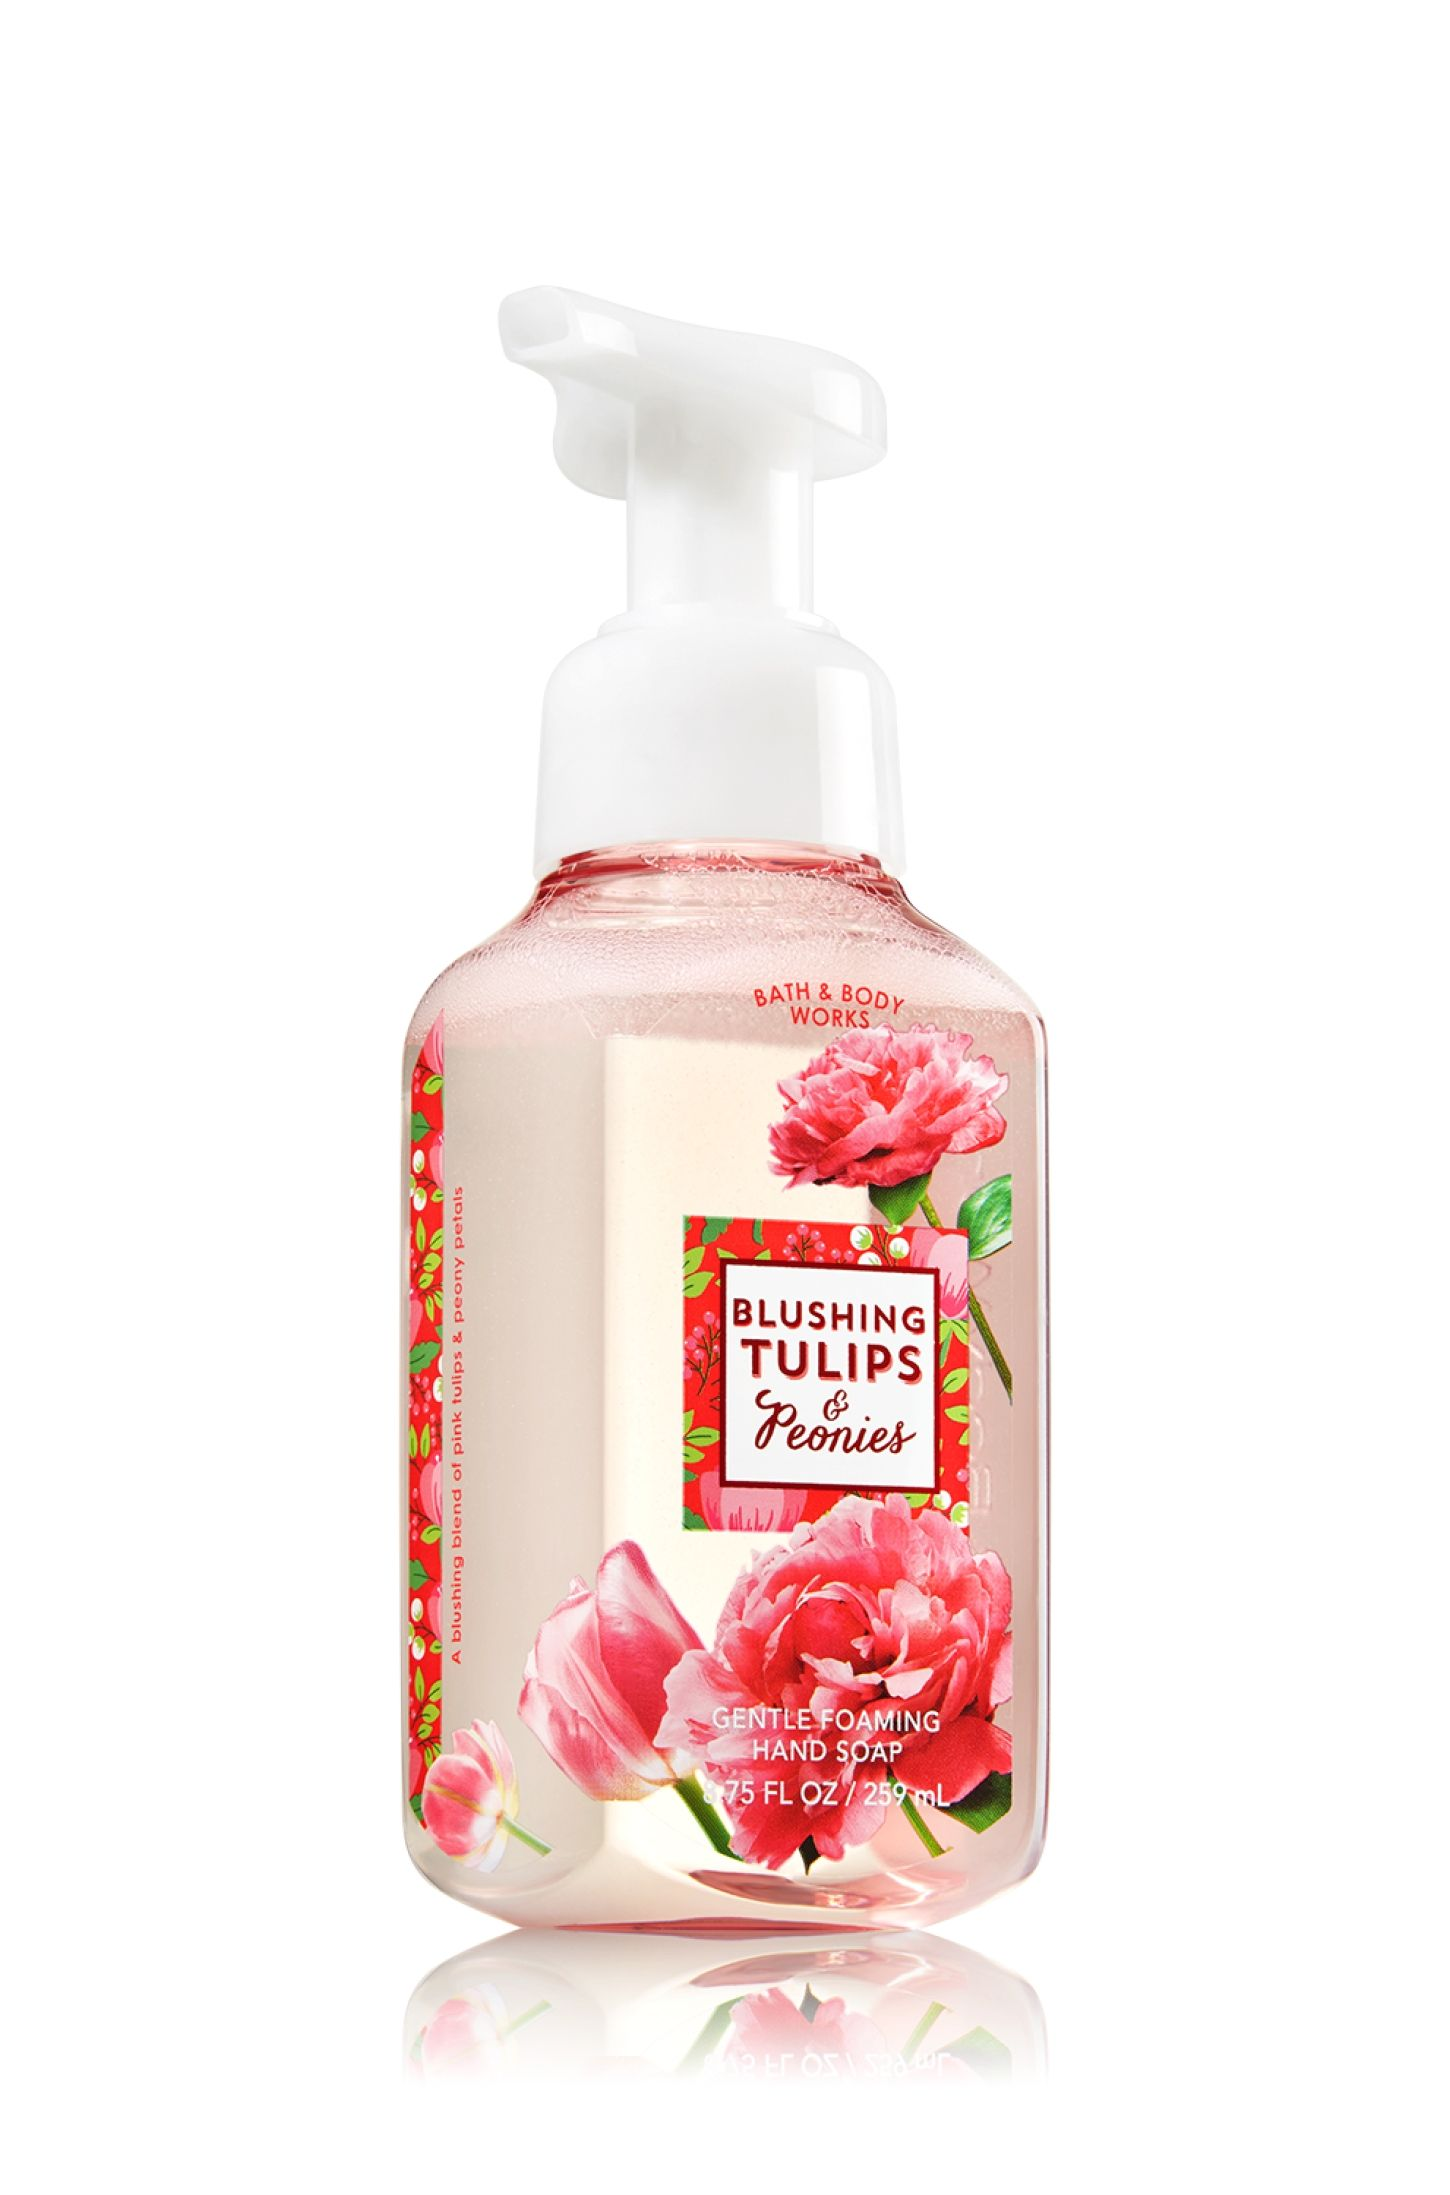 Blushing Tulips Peonies Gentle Foaming Hand Soap Soap